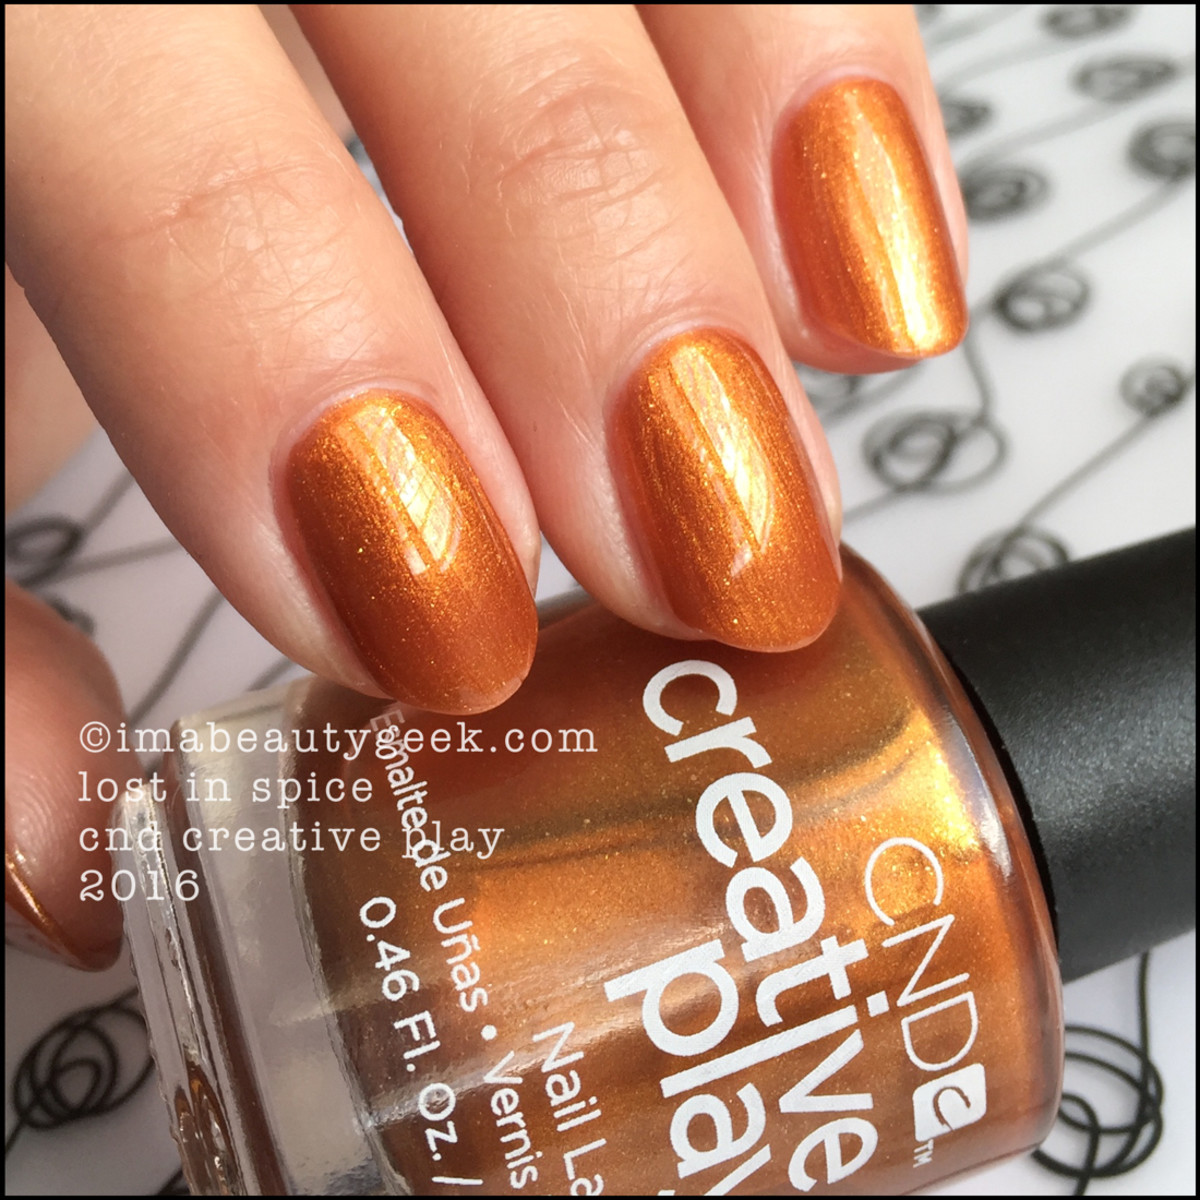 CND Creative Play Lost in Spice_CND Creative Play Nail Polish Swatches